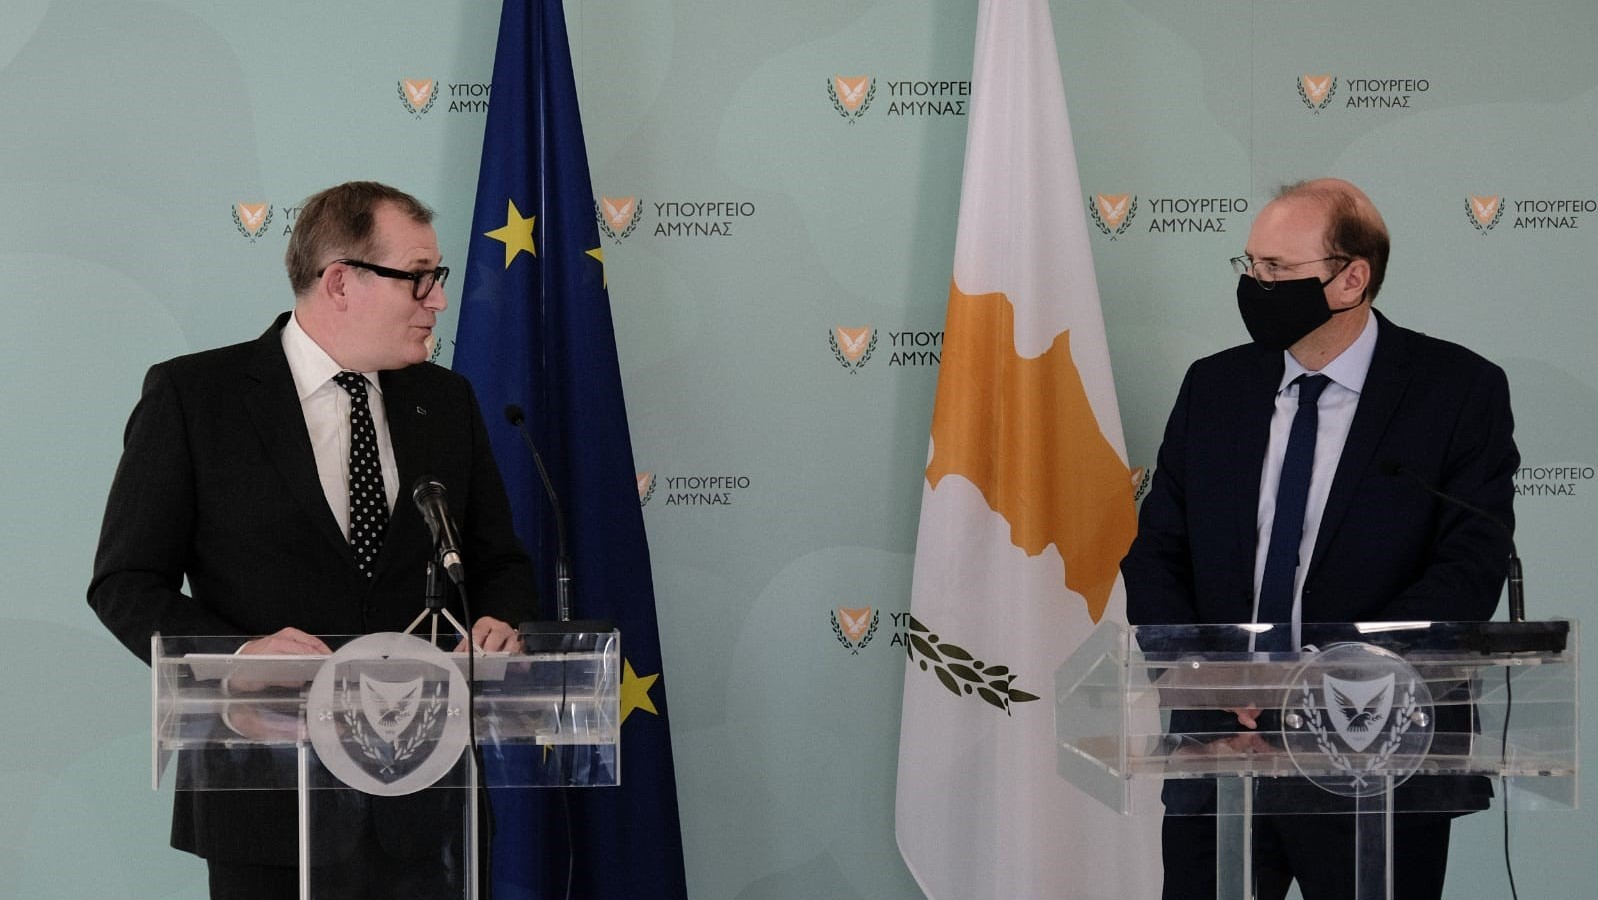 CE in Cyprus for high-level talks